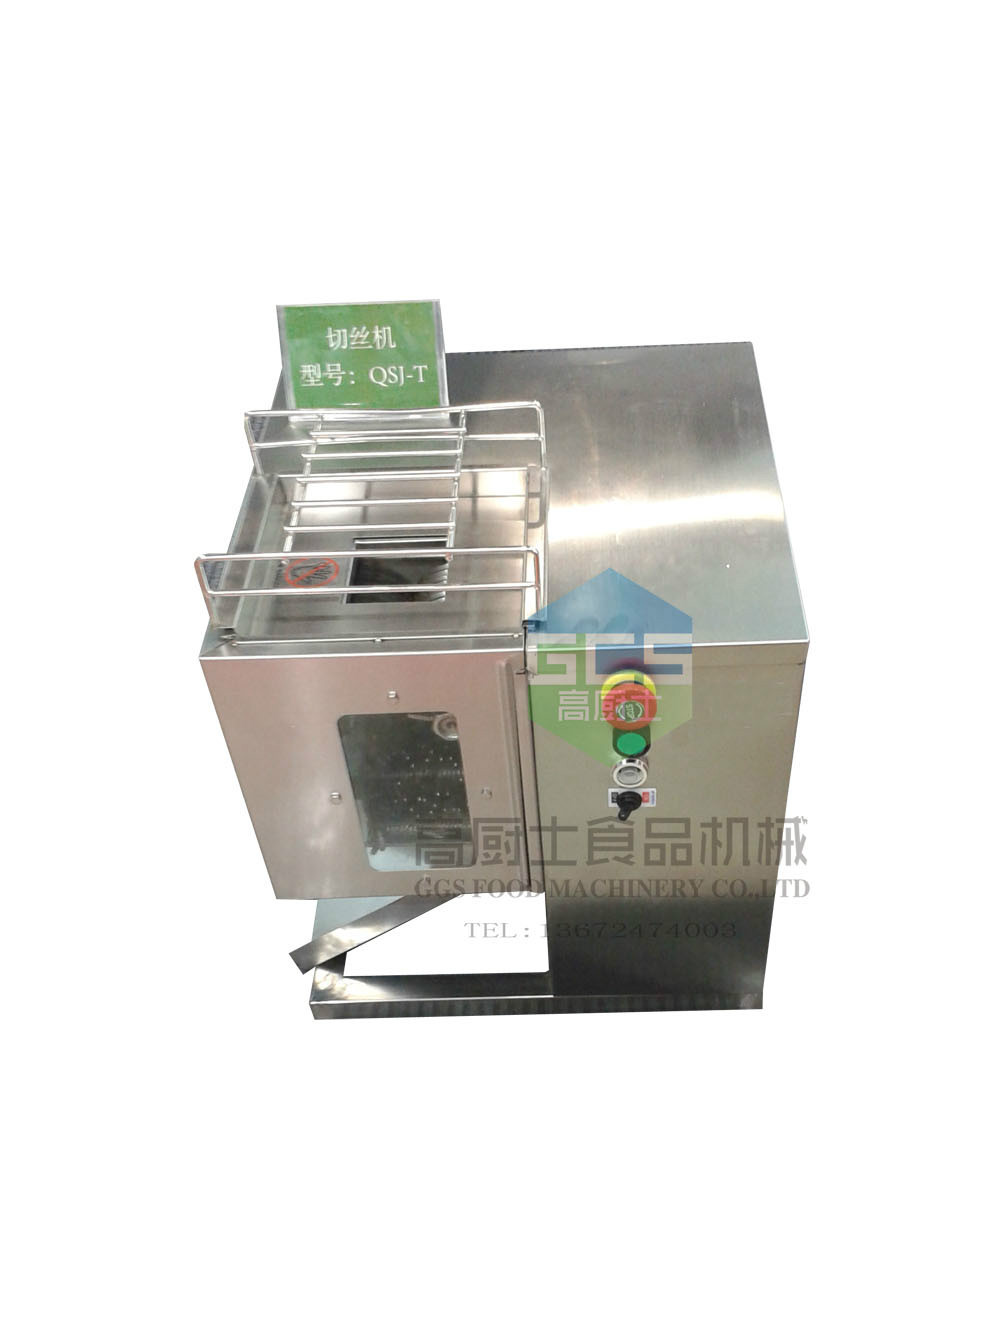 110V or 220V desktop type multifunction meat cutting machine/ meat slicer/ MEAT diced /meat strip machine free shipping exports to united states 110v 220v desktop type meat cutter meat cutting machine meat slicer